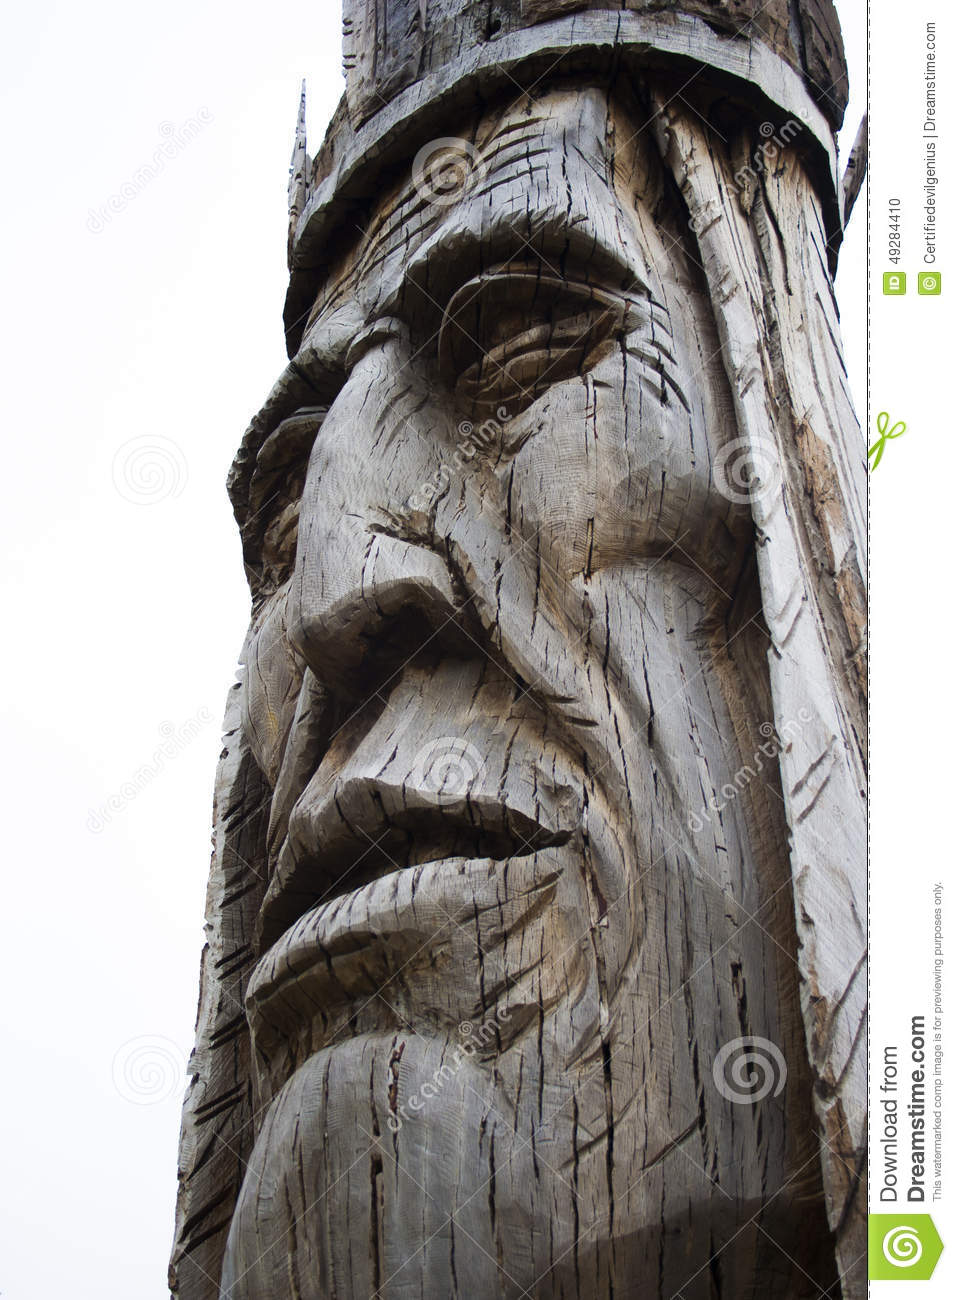 Giant carved wooden Native American head statue